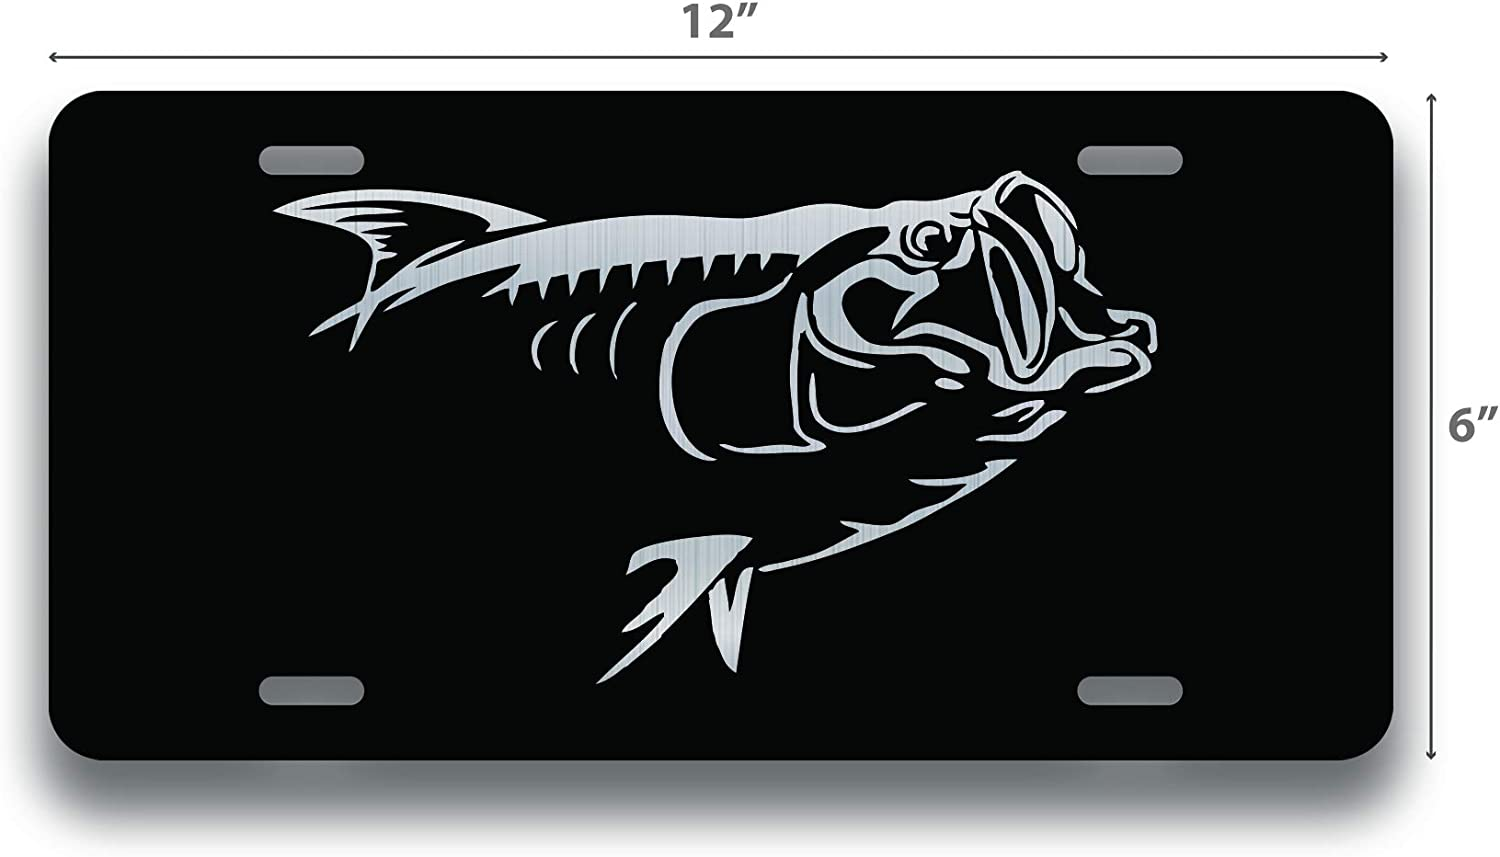 Car Truck RV Trailer Wall Shop Man Cave 6-Inches by 12-Inches DHDM Bass Fish License Plate Tag Vanity Novelty Metal VLP465 Etched Metal